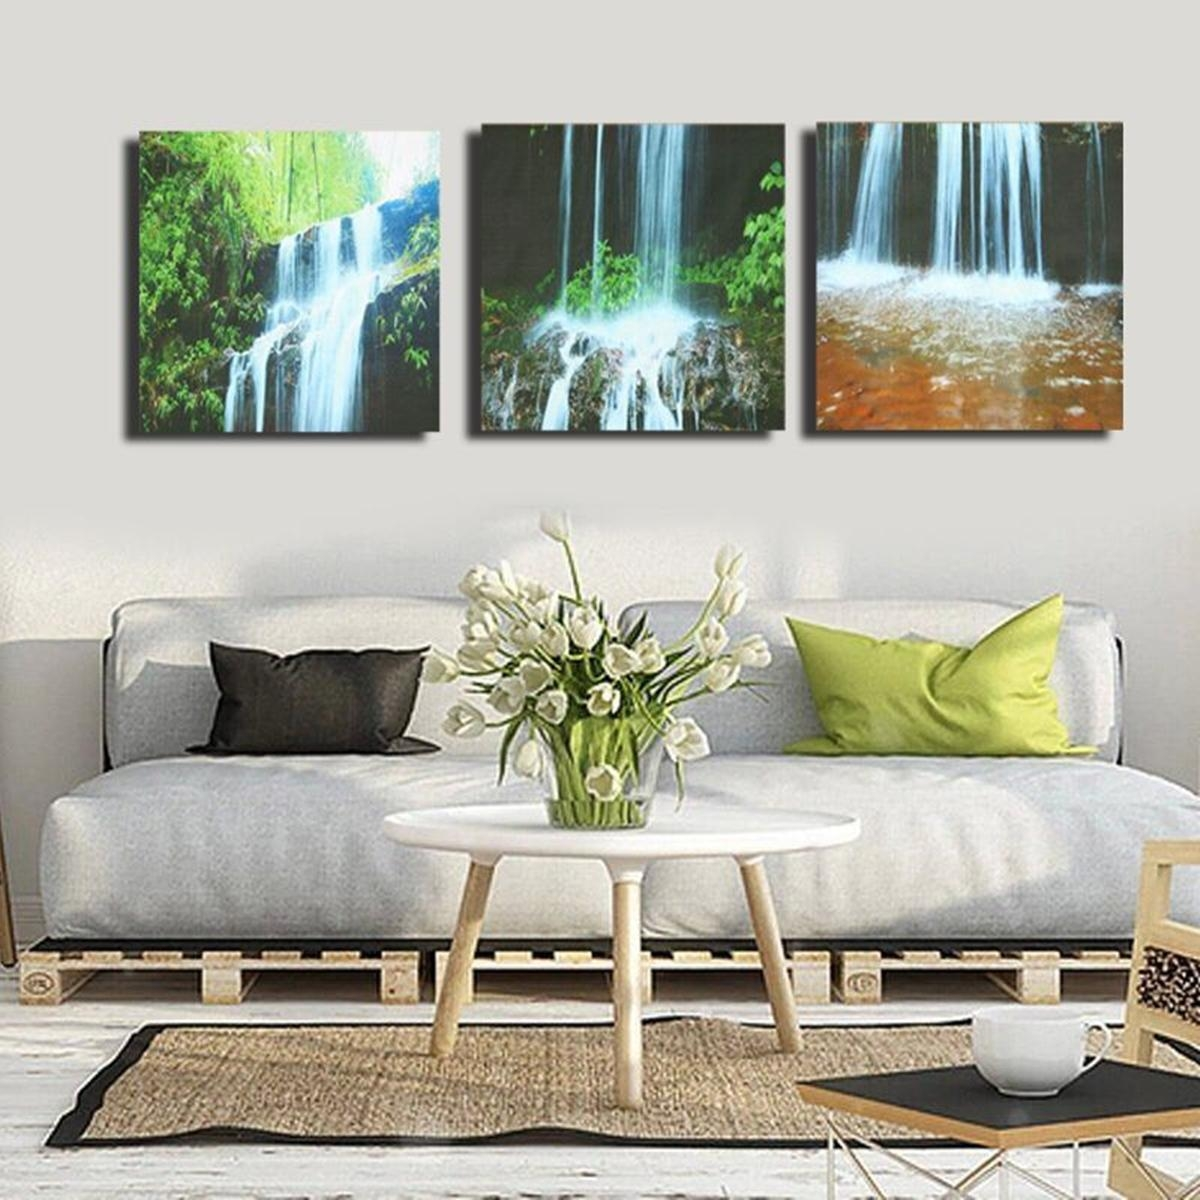 3 Cascade Large Waterfall Framed Print Painting Canvas Wall Art Regarding Waterfall Wall Art (Image 1 of 20)